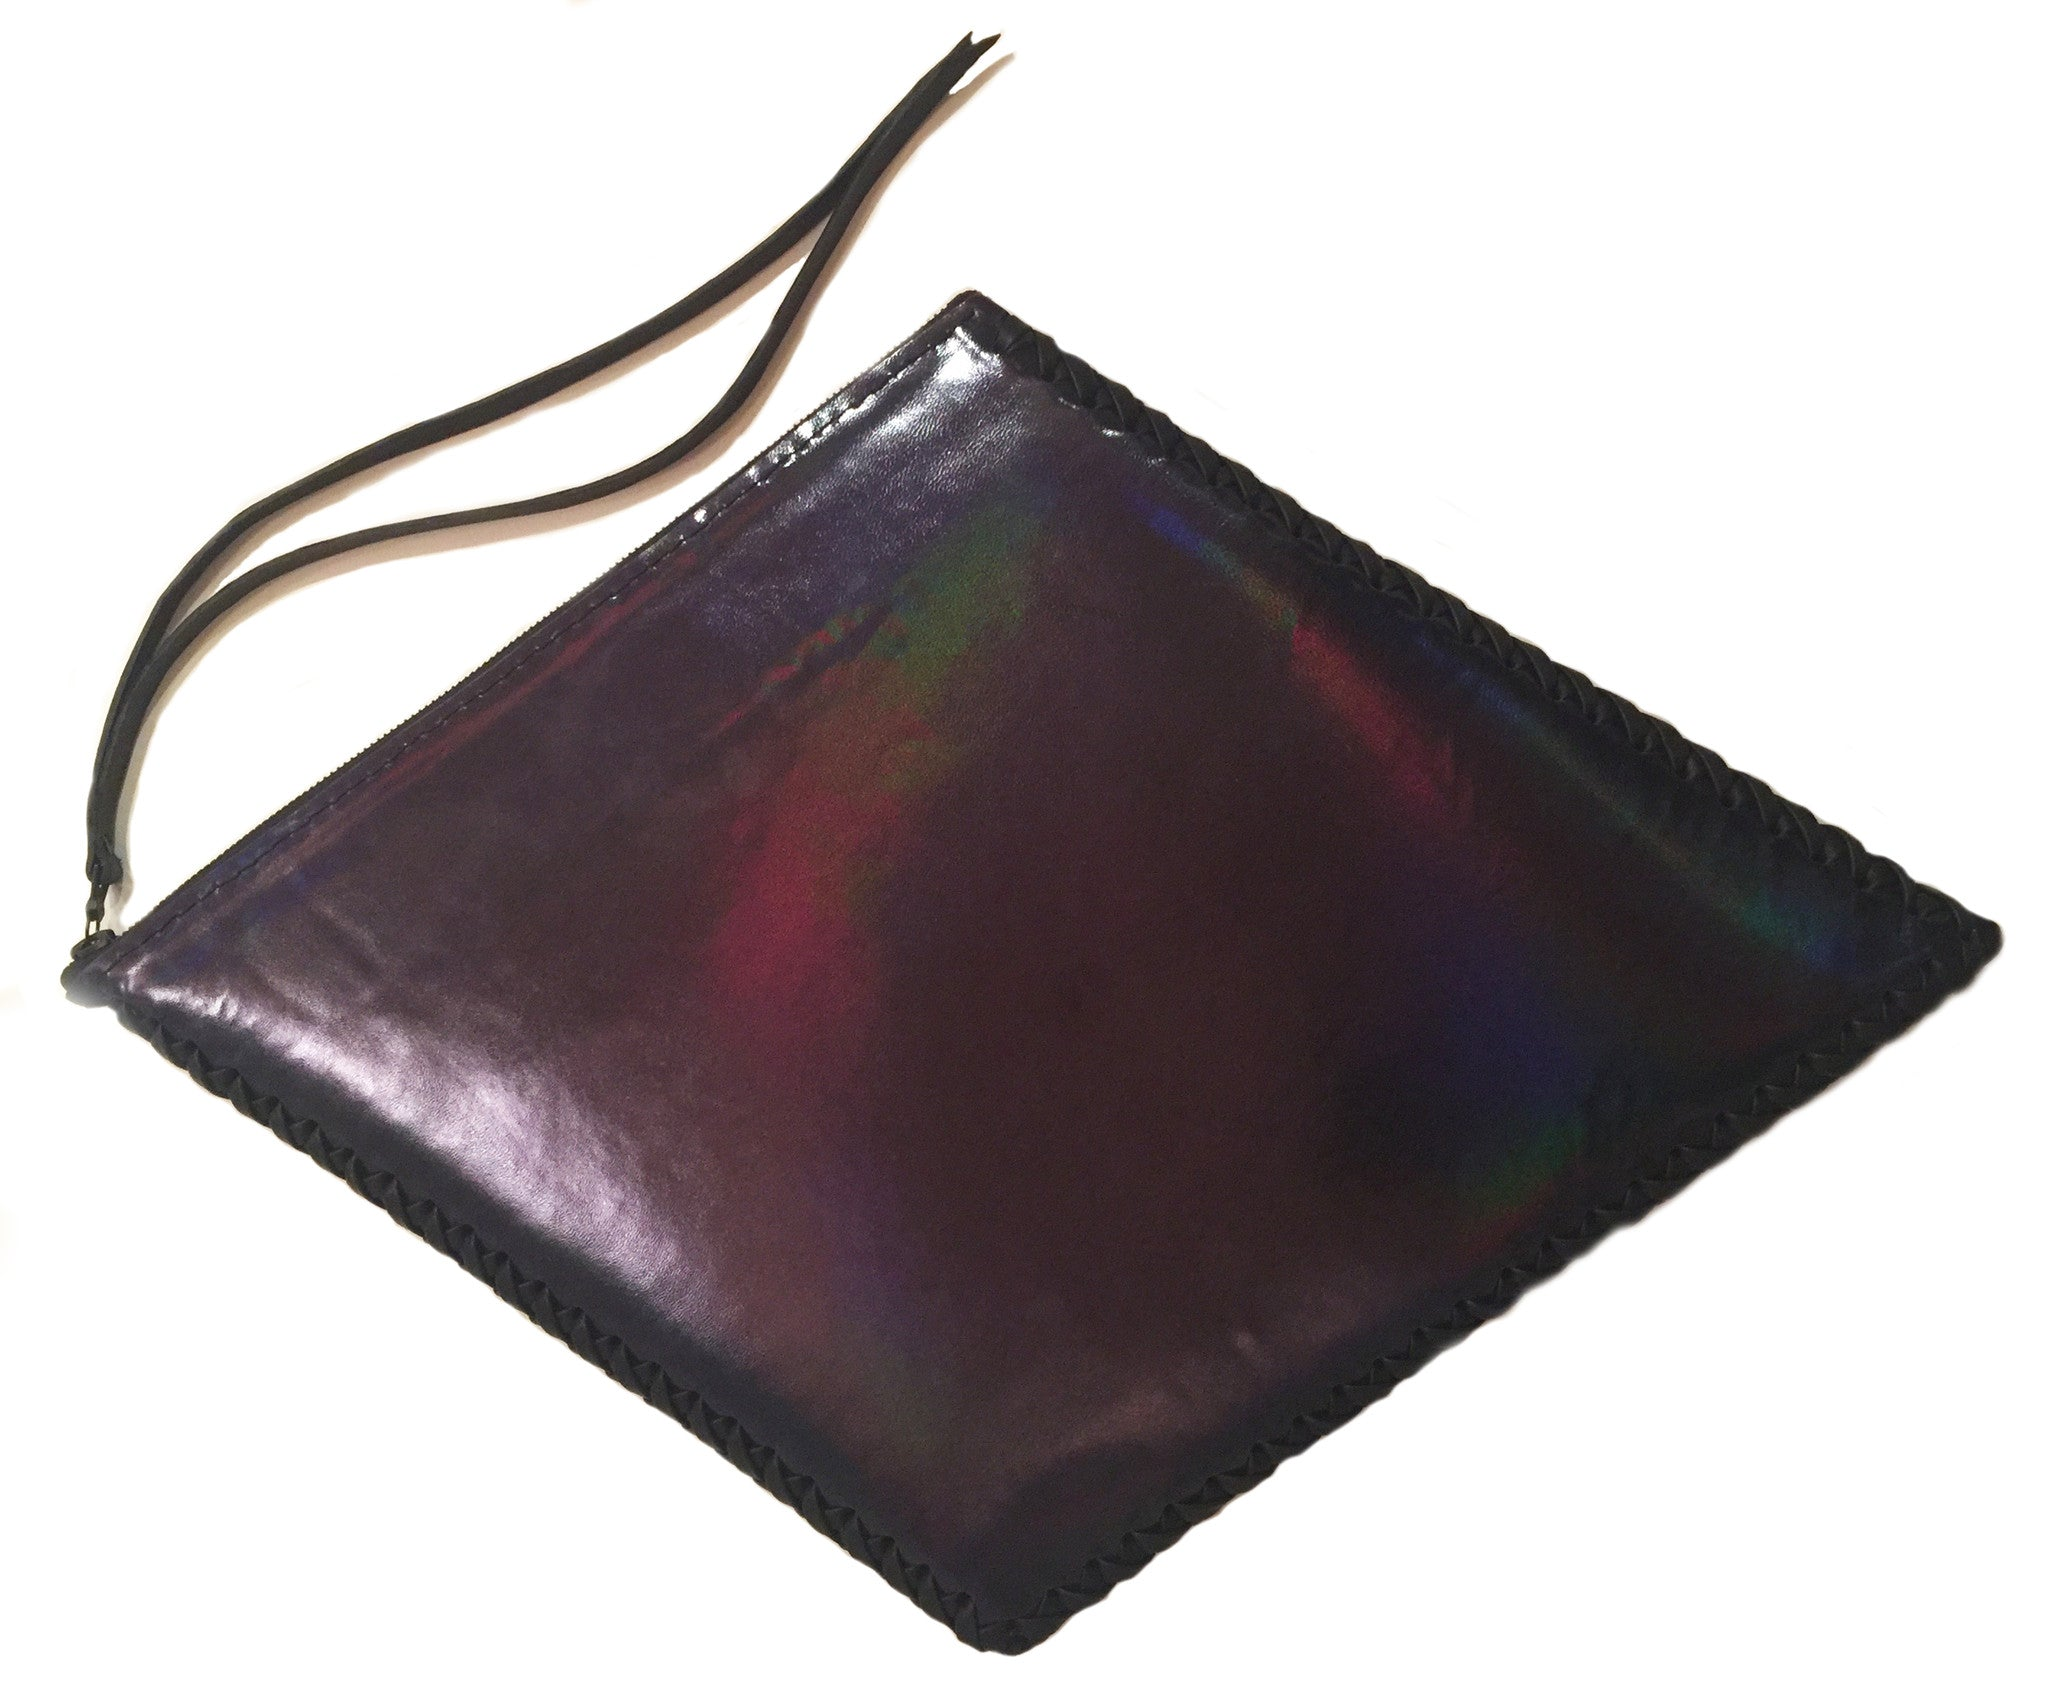 Shiny Reflective Black Rainbow Patent Leather Diamond Kite Shape Clutch Wendy Nichol Luxury Handbag Purse Designer Handmade in NYC New York City Large Thin Structured Clutch Evening Red Carpet High Quality Leather